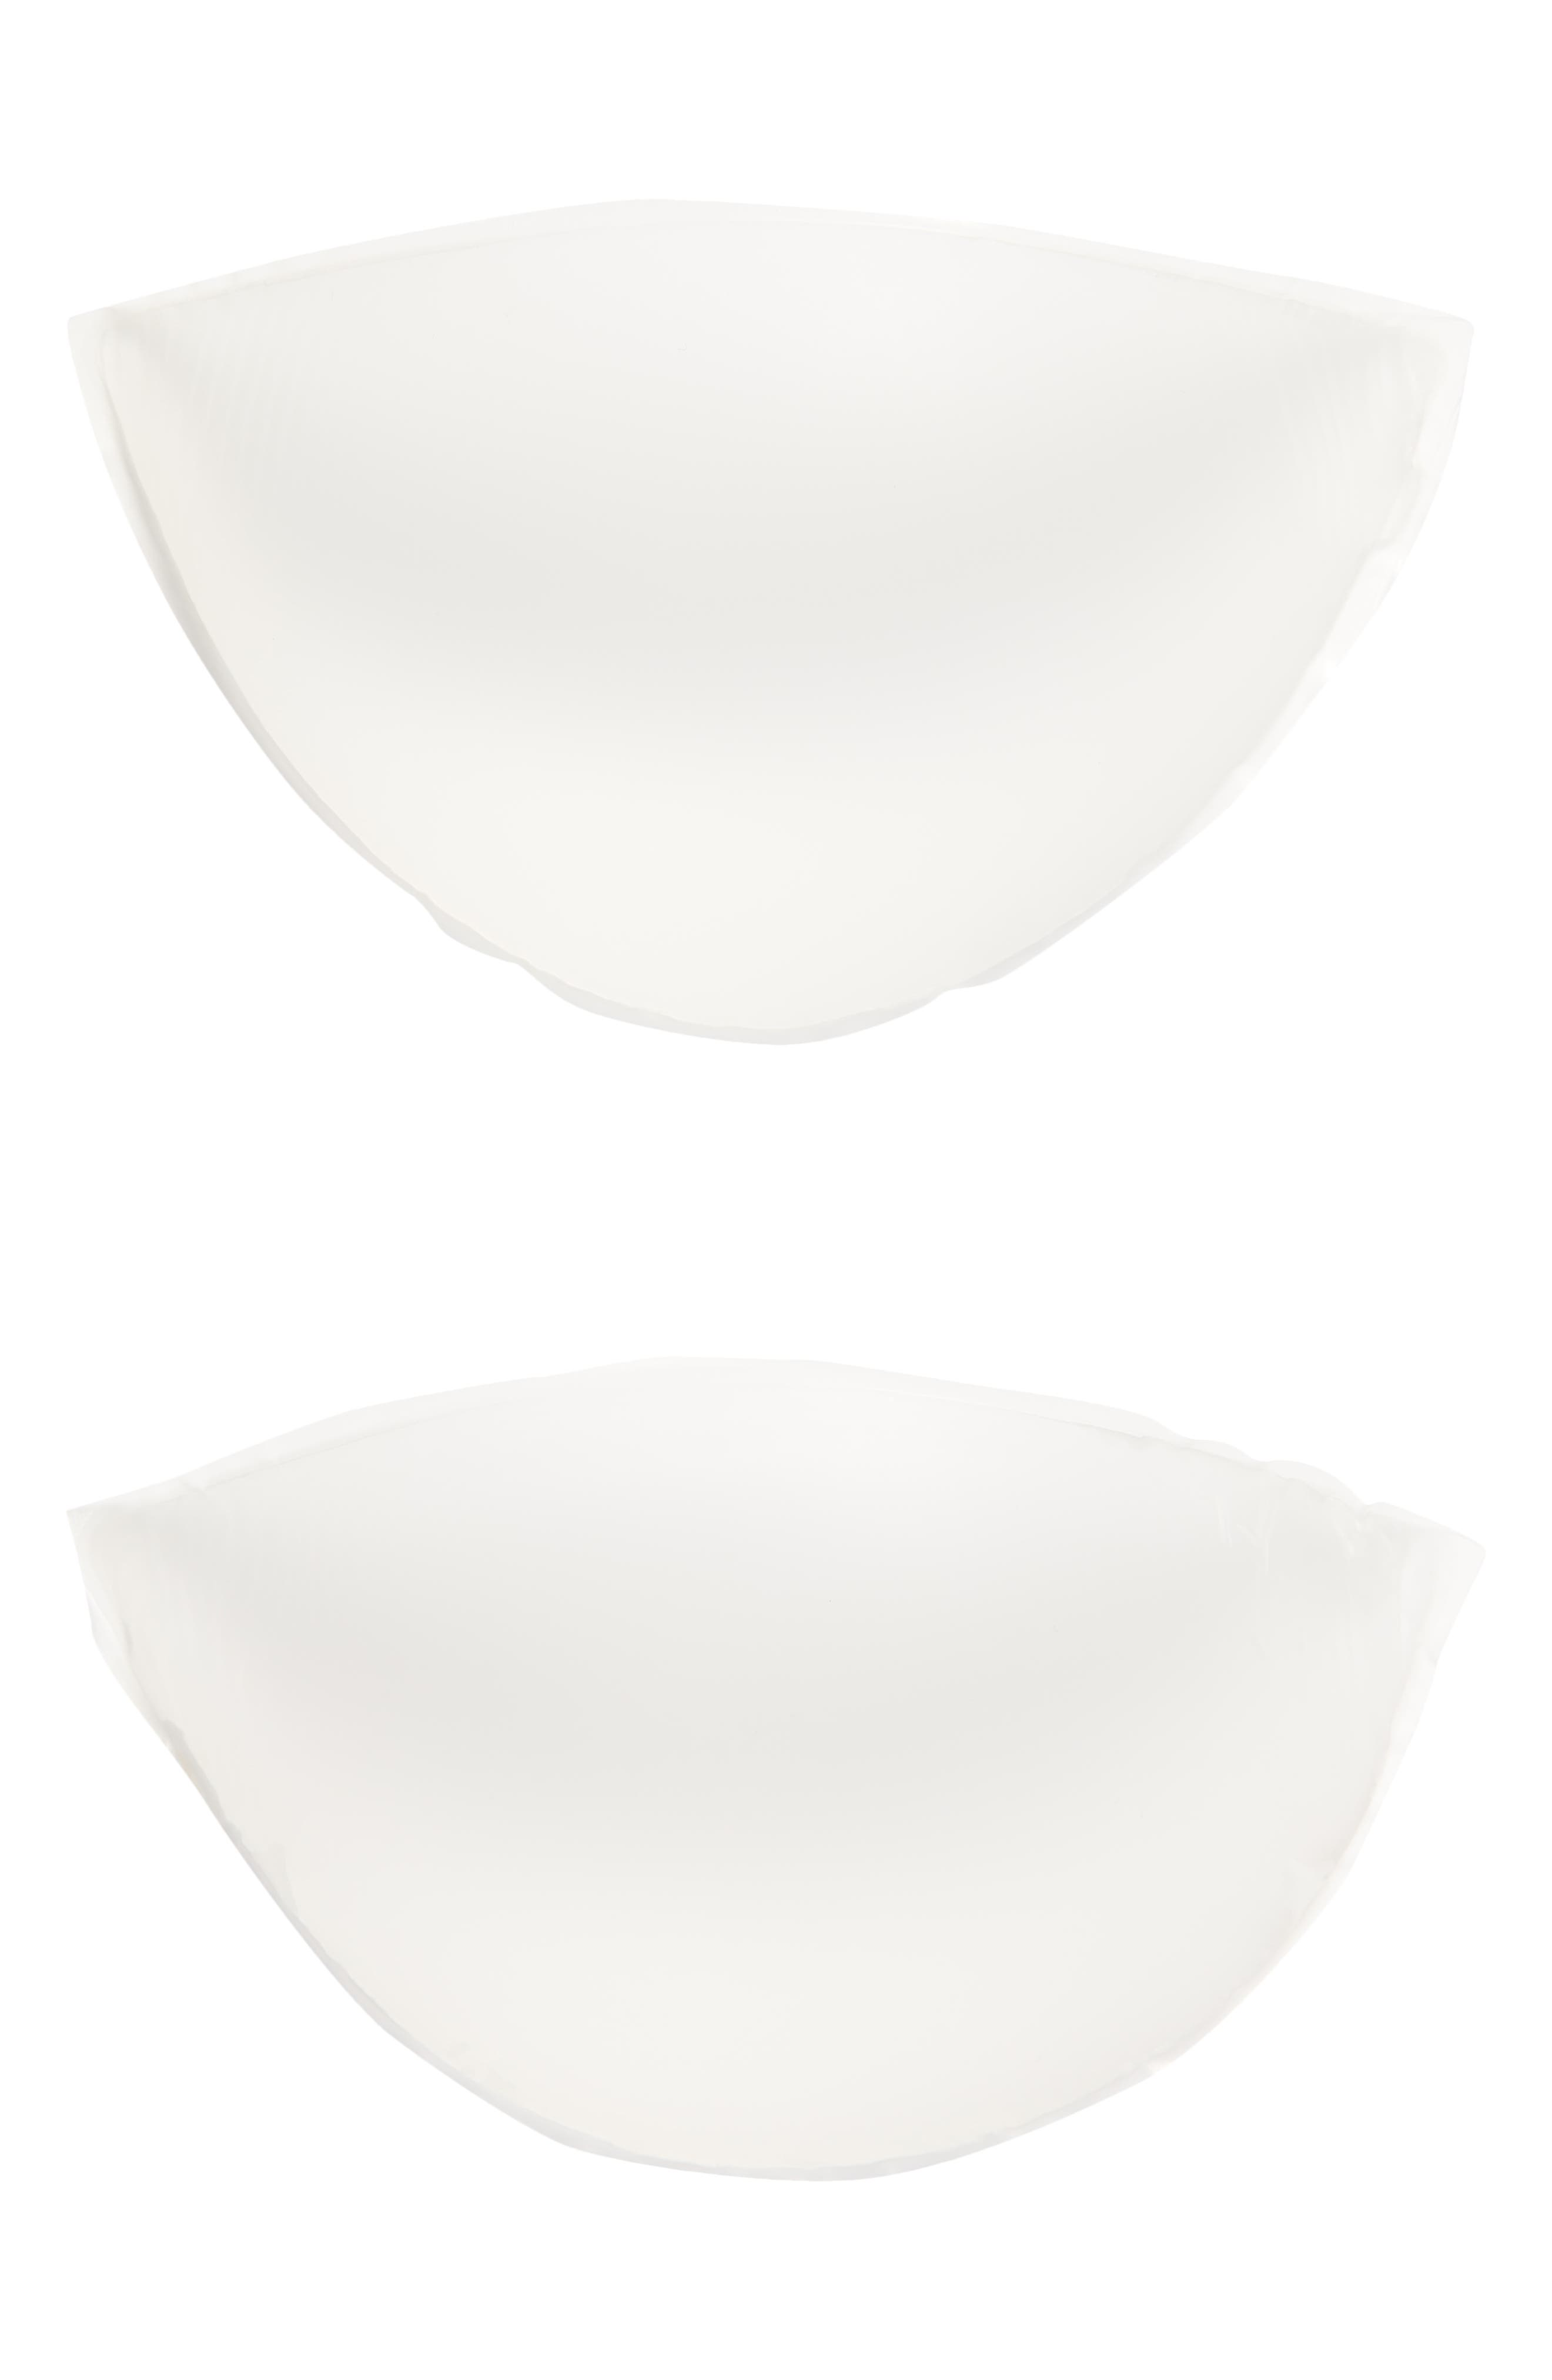 Image of Nordstrom Gel Push-Up Pads